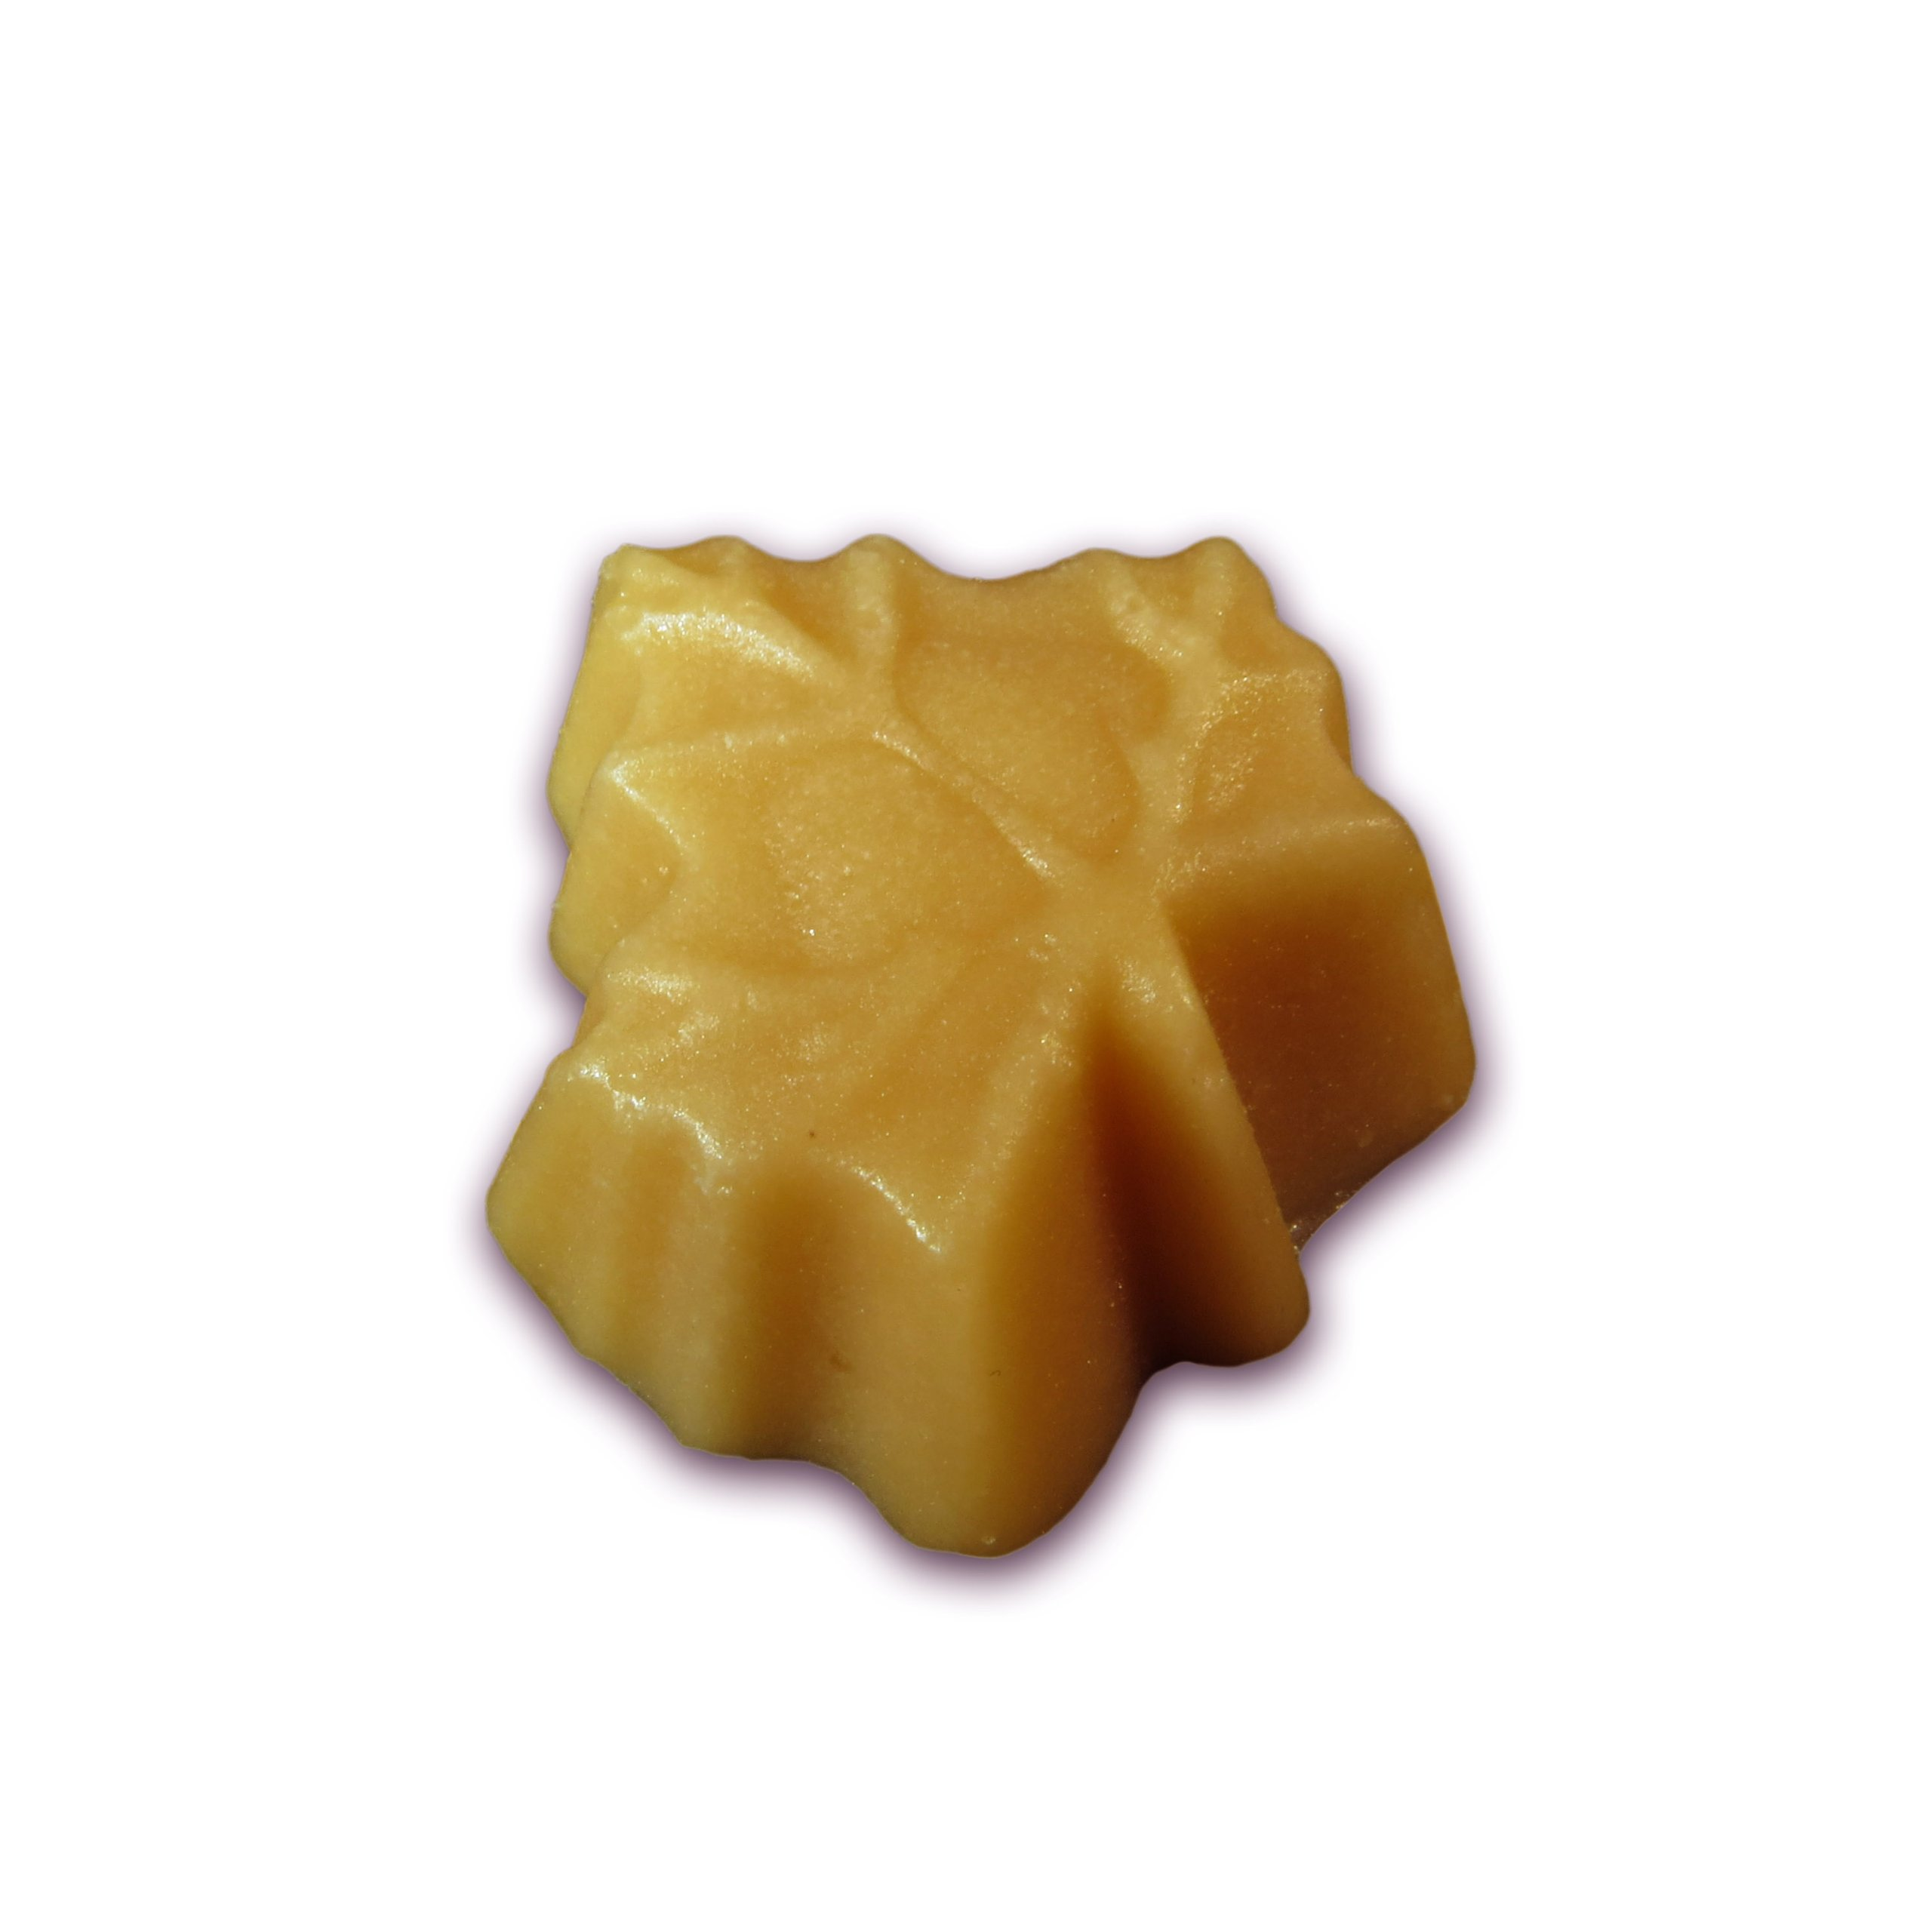 08362571c41 Amazon.com   100% Pure Vermont Maple Sugar Candy - 50 1 3oz. Leaves  Over  1LB!   Candy And Chocolate Multipack Bars   Grocery   Gourmet Food